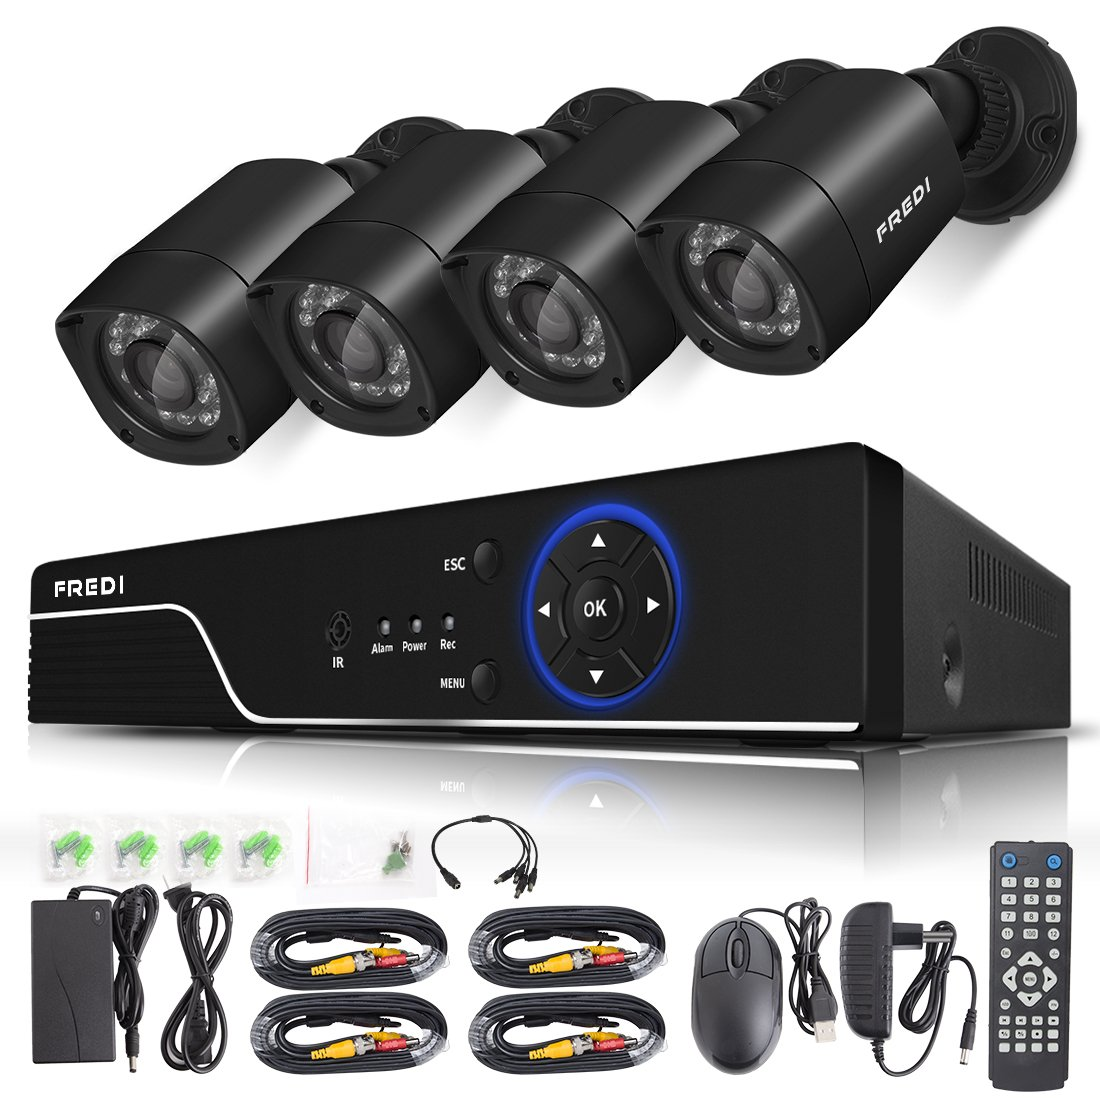 Fredi Security Camera System 8 Channel Hd Tvi 1080p Home 2channel Remote View Mobile Dvr With Shock Sensor And Wifi Lite Video 4 10mp Indoor Outdoor Weatherproof Cameras Ir